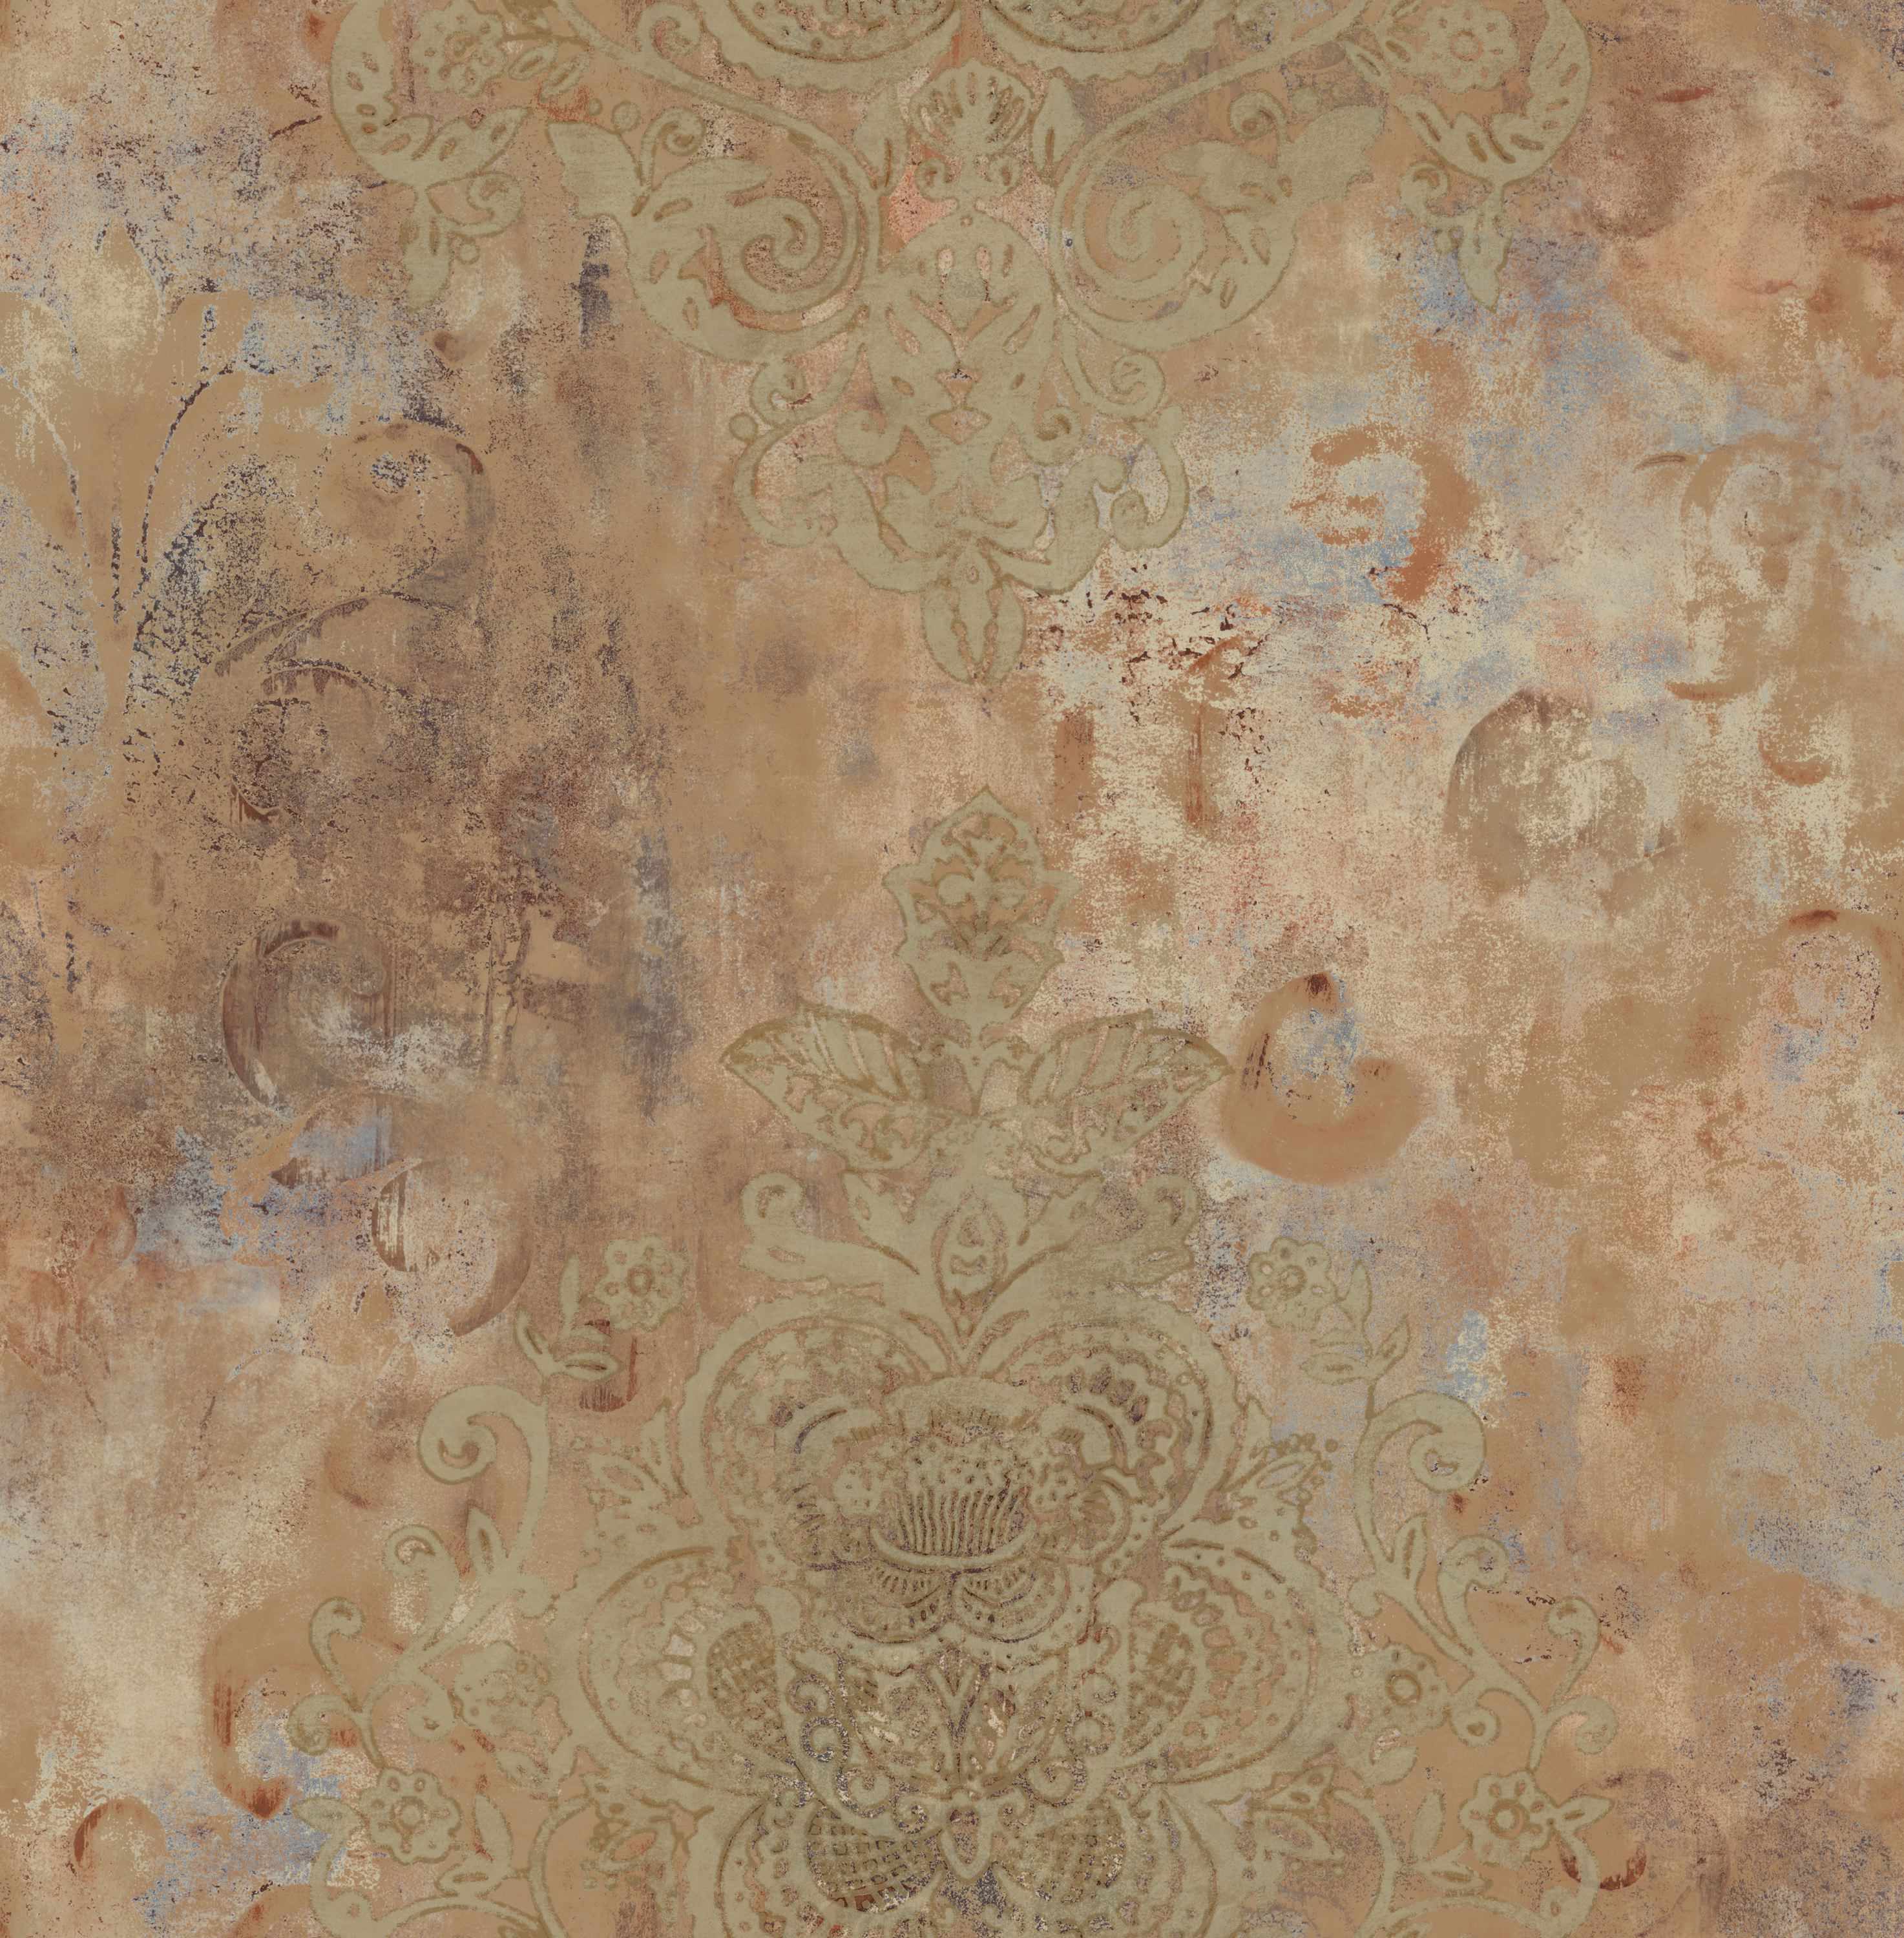 Wall painting effects - Didi S Damask Faux Effect Painted Wallpaper Fax 38950 Faux Effects Wall Paper